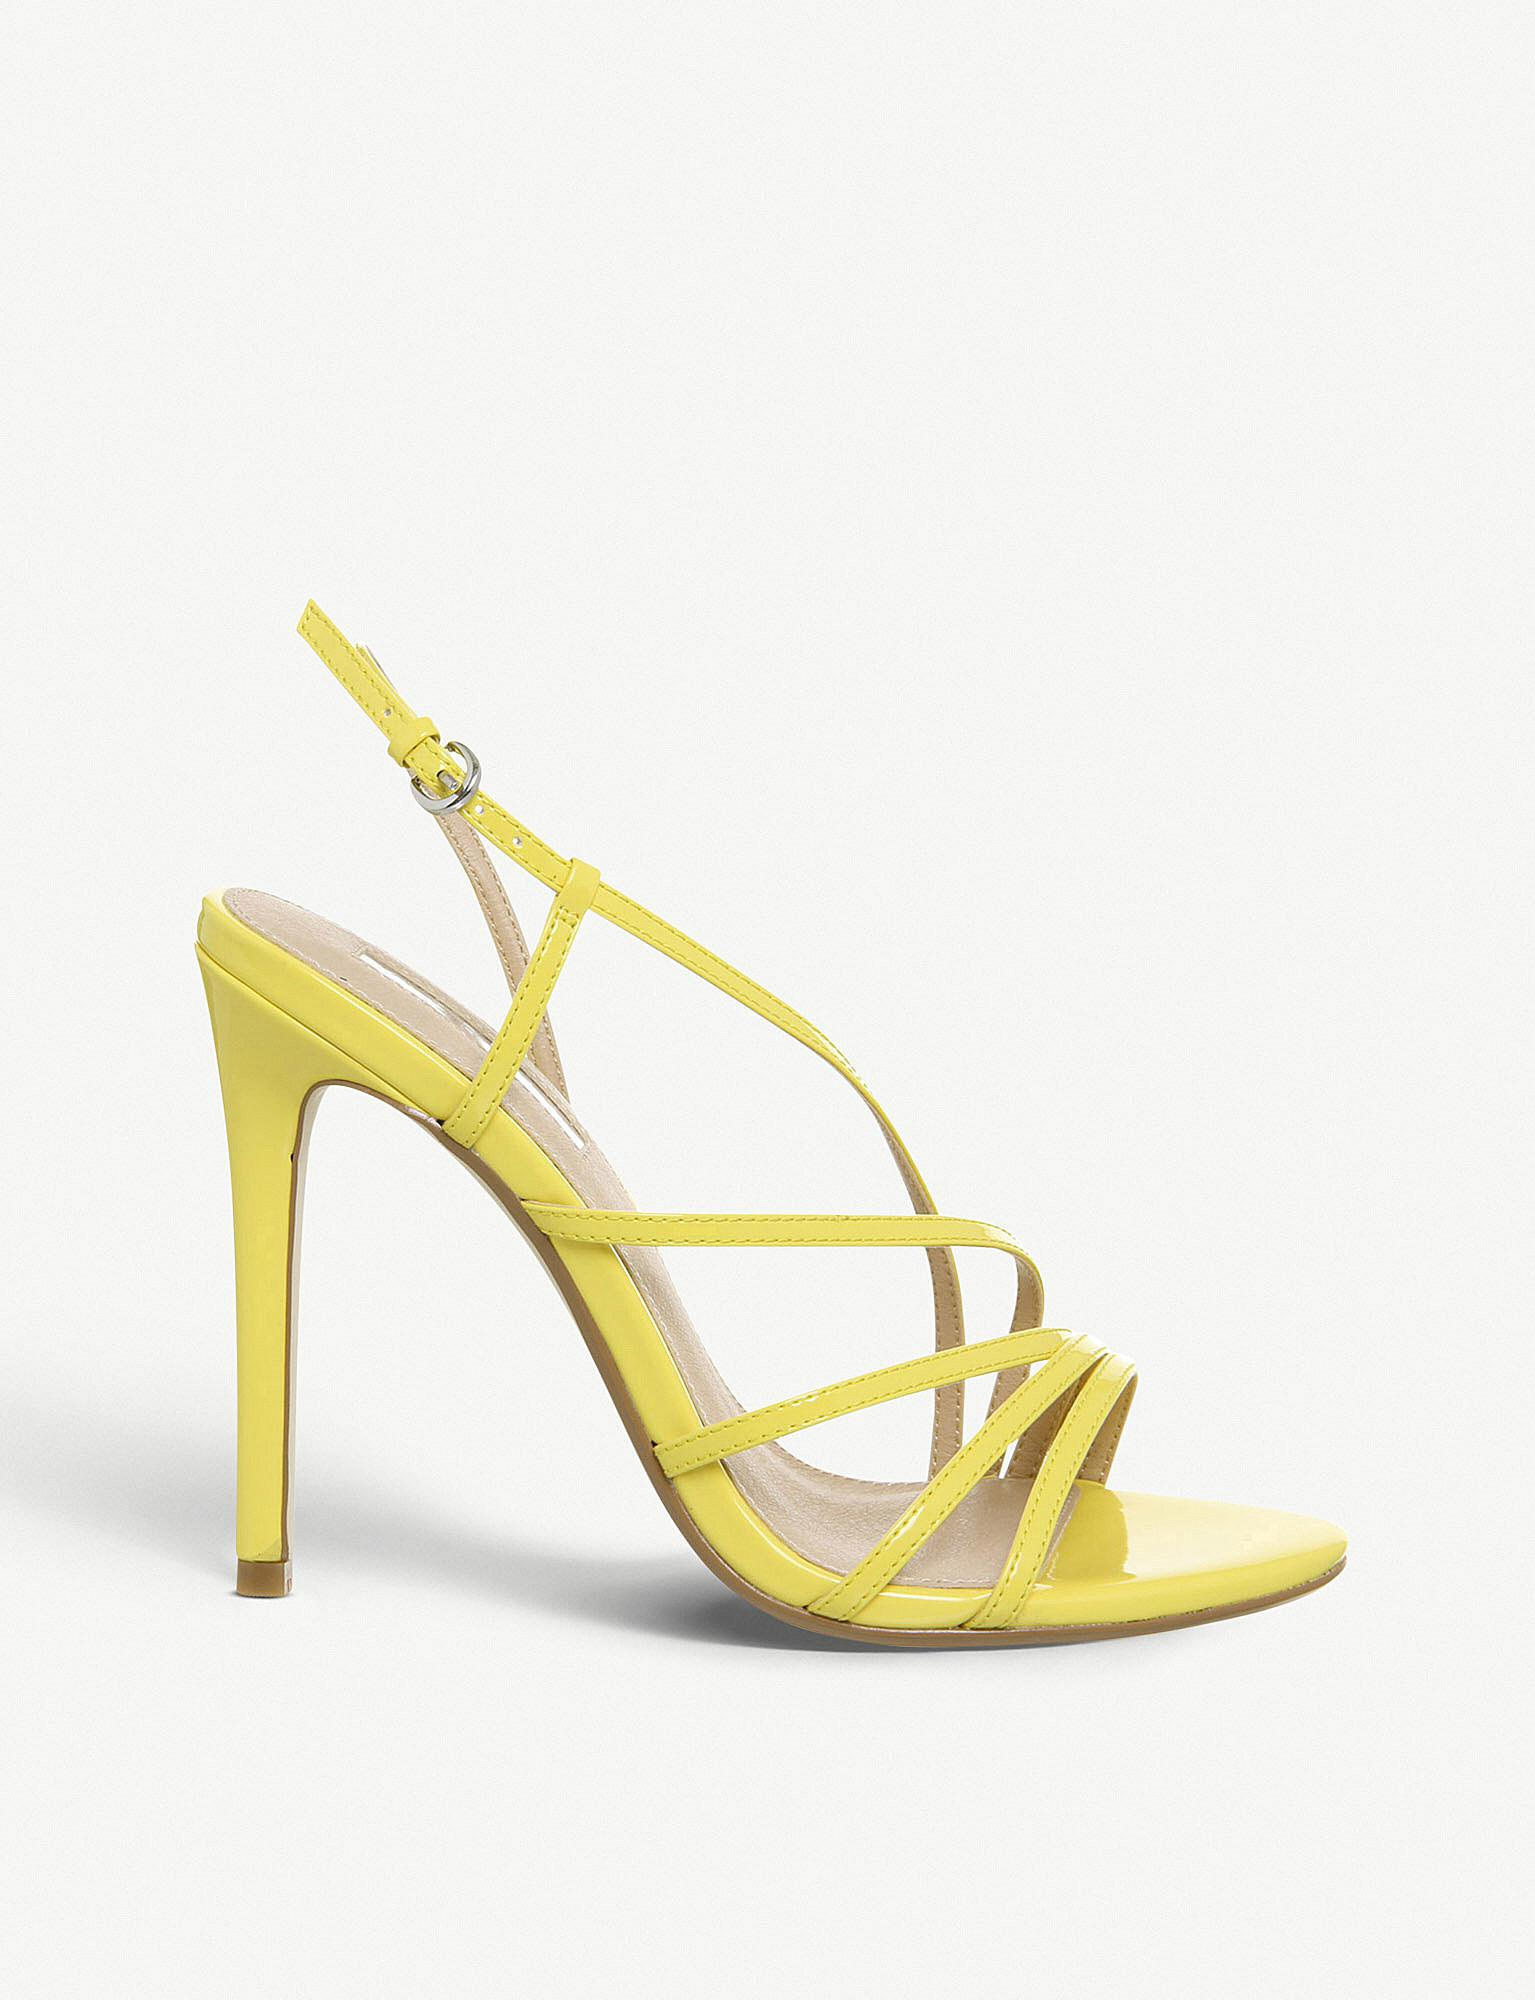 7c63999152 Office Hamsa Faux-leather Heeled Sandals in Yellow - Lyst